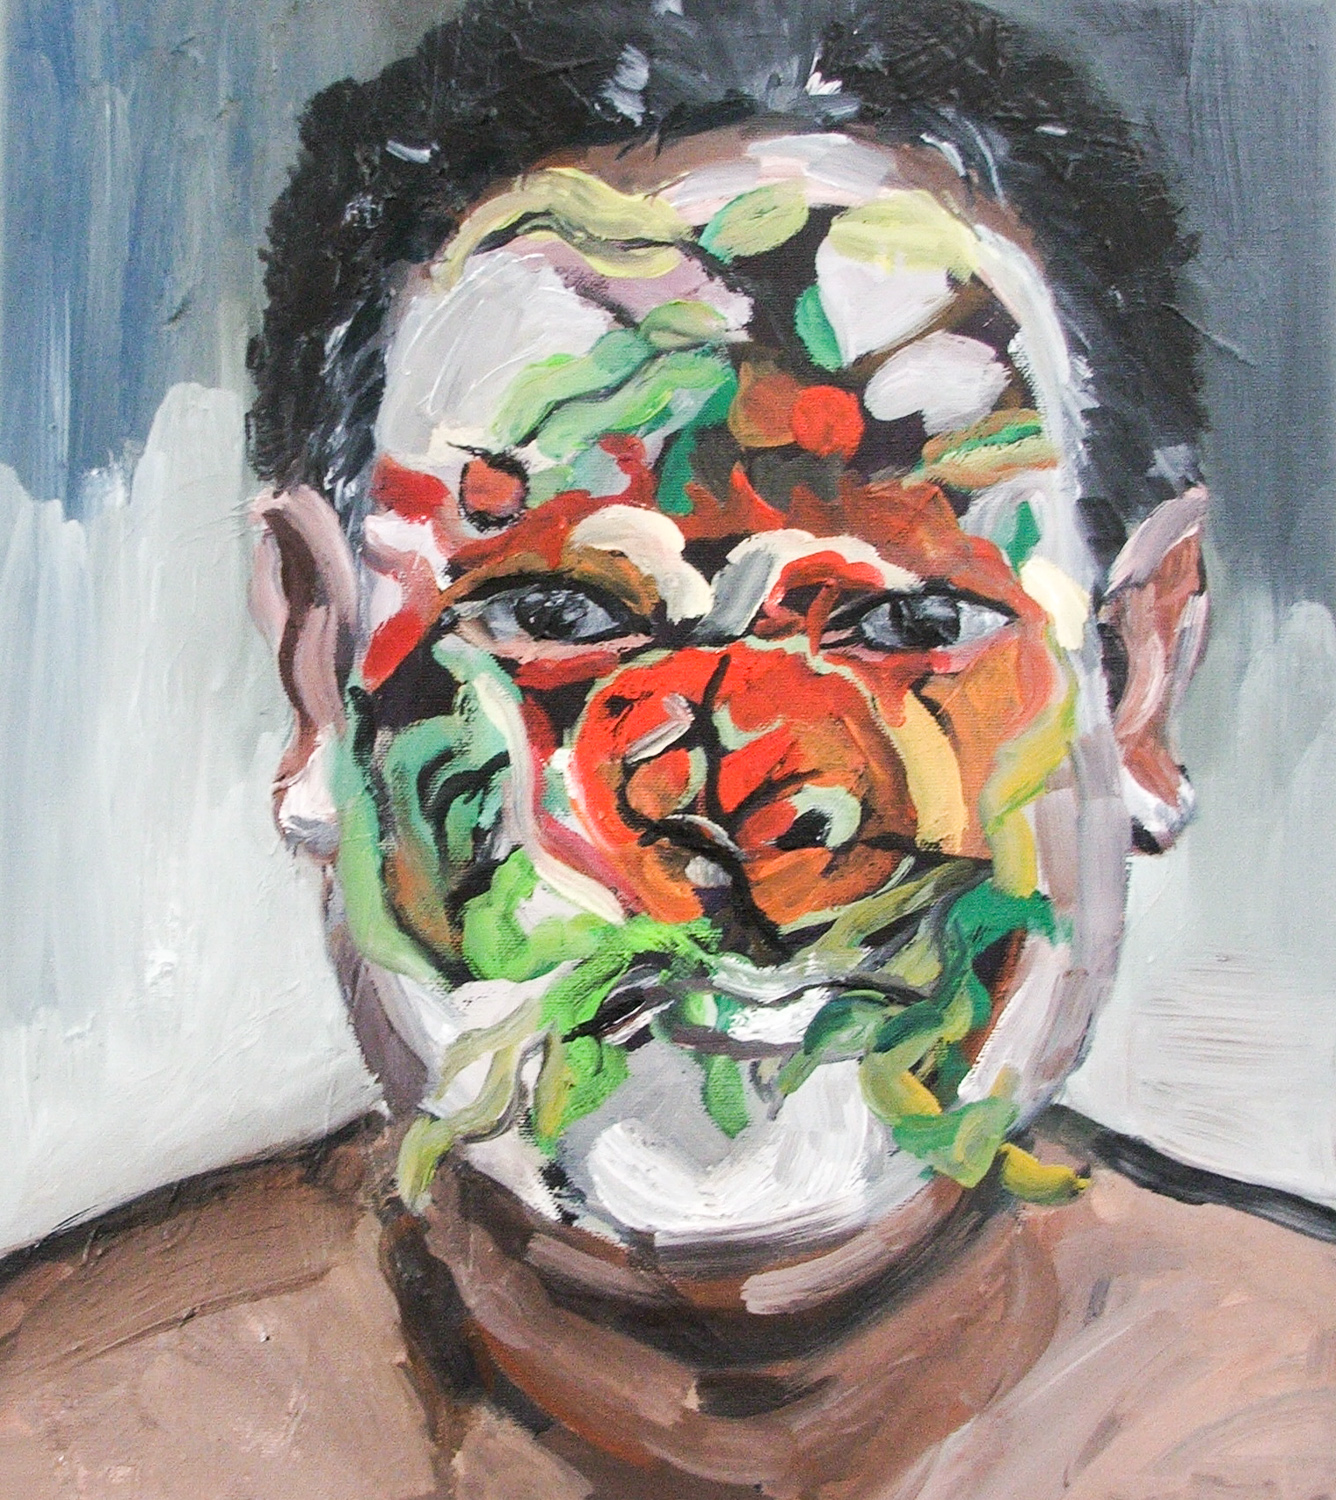 A Painted Man, Oil on canvas, 40X35 cm, 2010